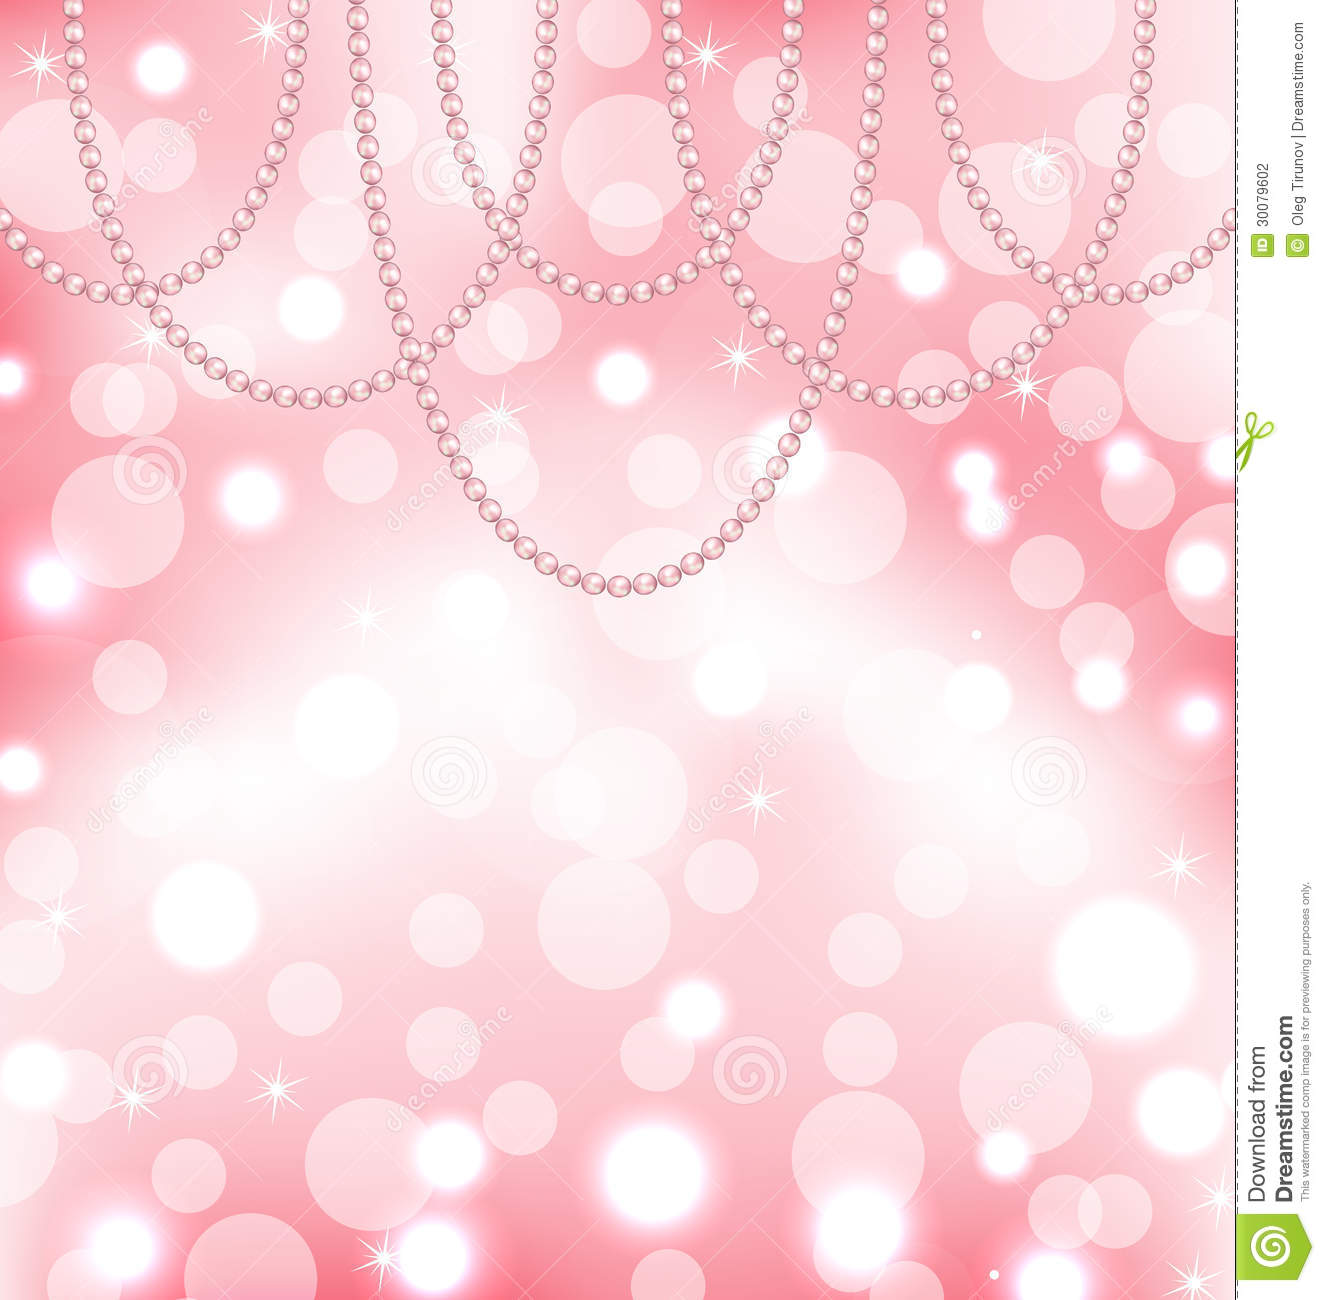 Cute Pink Background With Pearls Stock Photography - Image ...